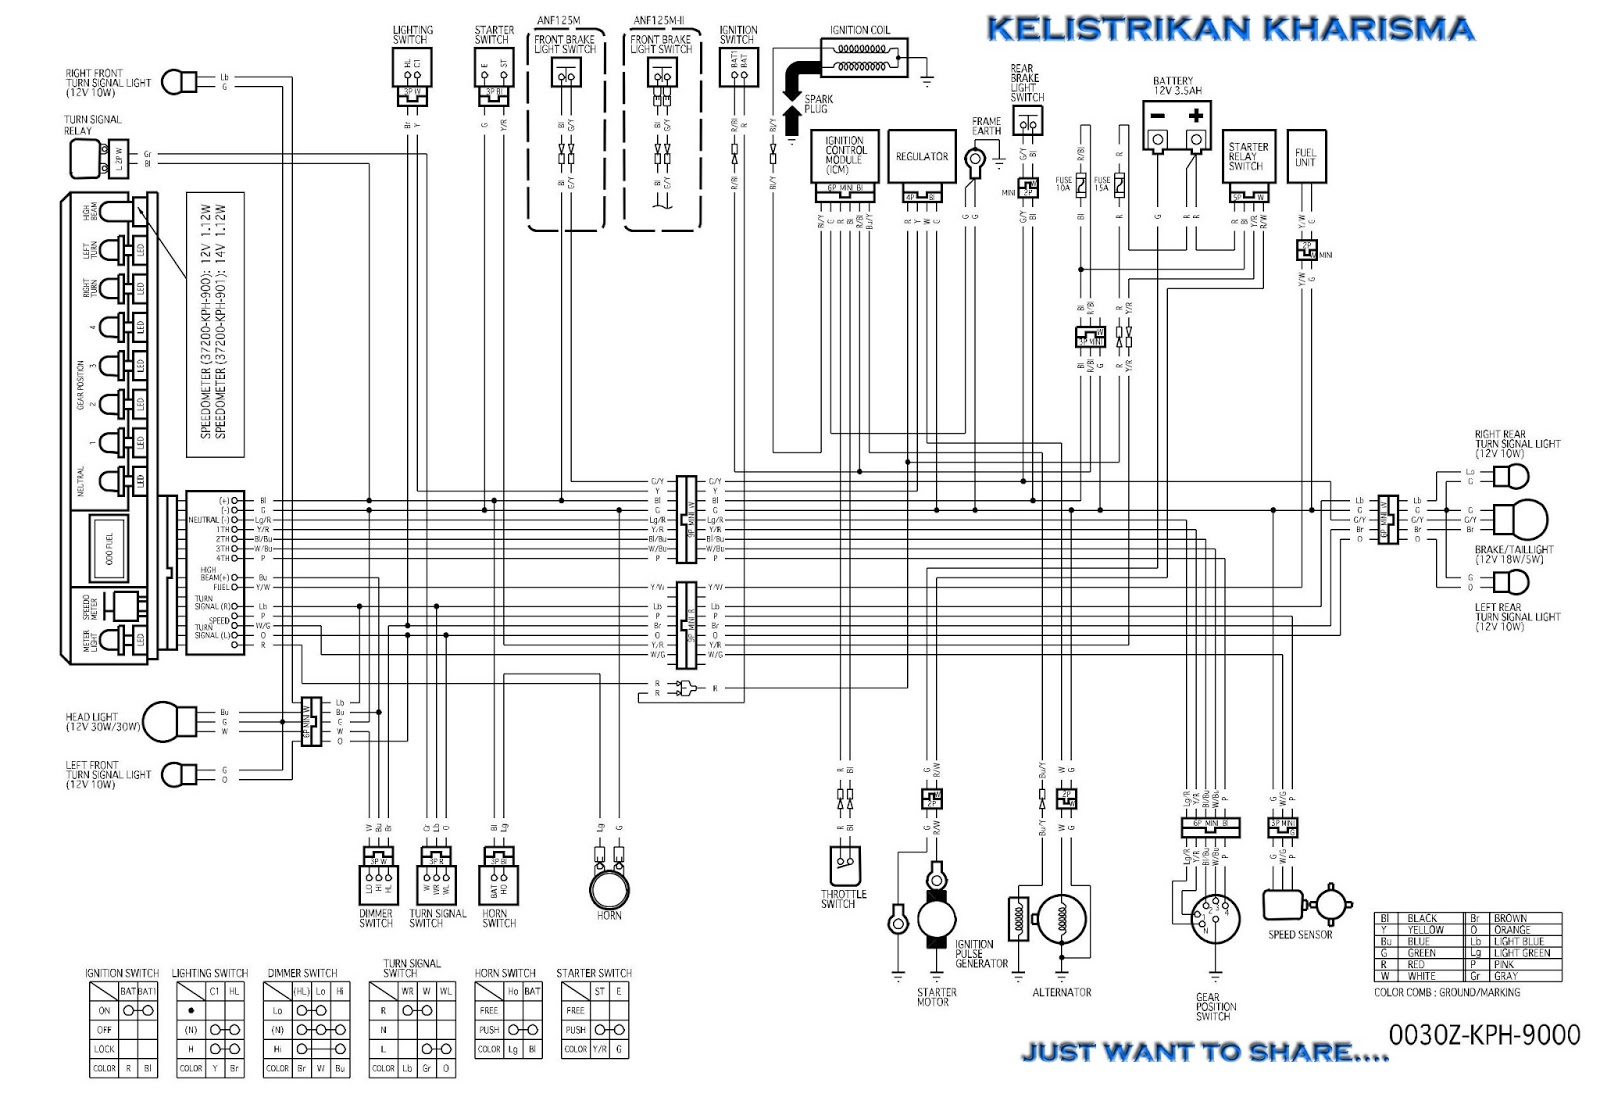 Wiring diagram sepeda motor wire center diagram kelistrikan honda kharisma bacabisa rh bacabisa blogspot com wiring diagram kelistrikan sepeda motor honda wiring diagram pengapian sepeda motor asfbconference2016 Gallery